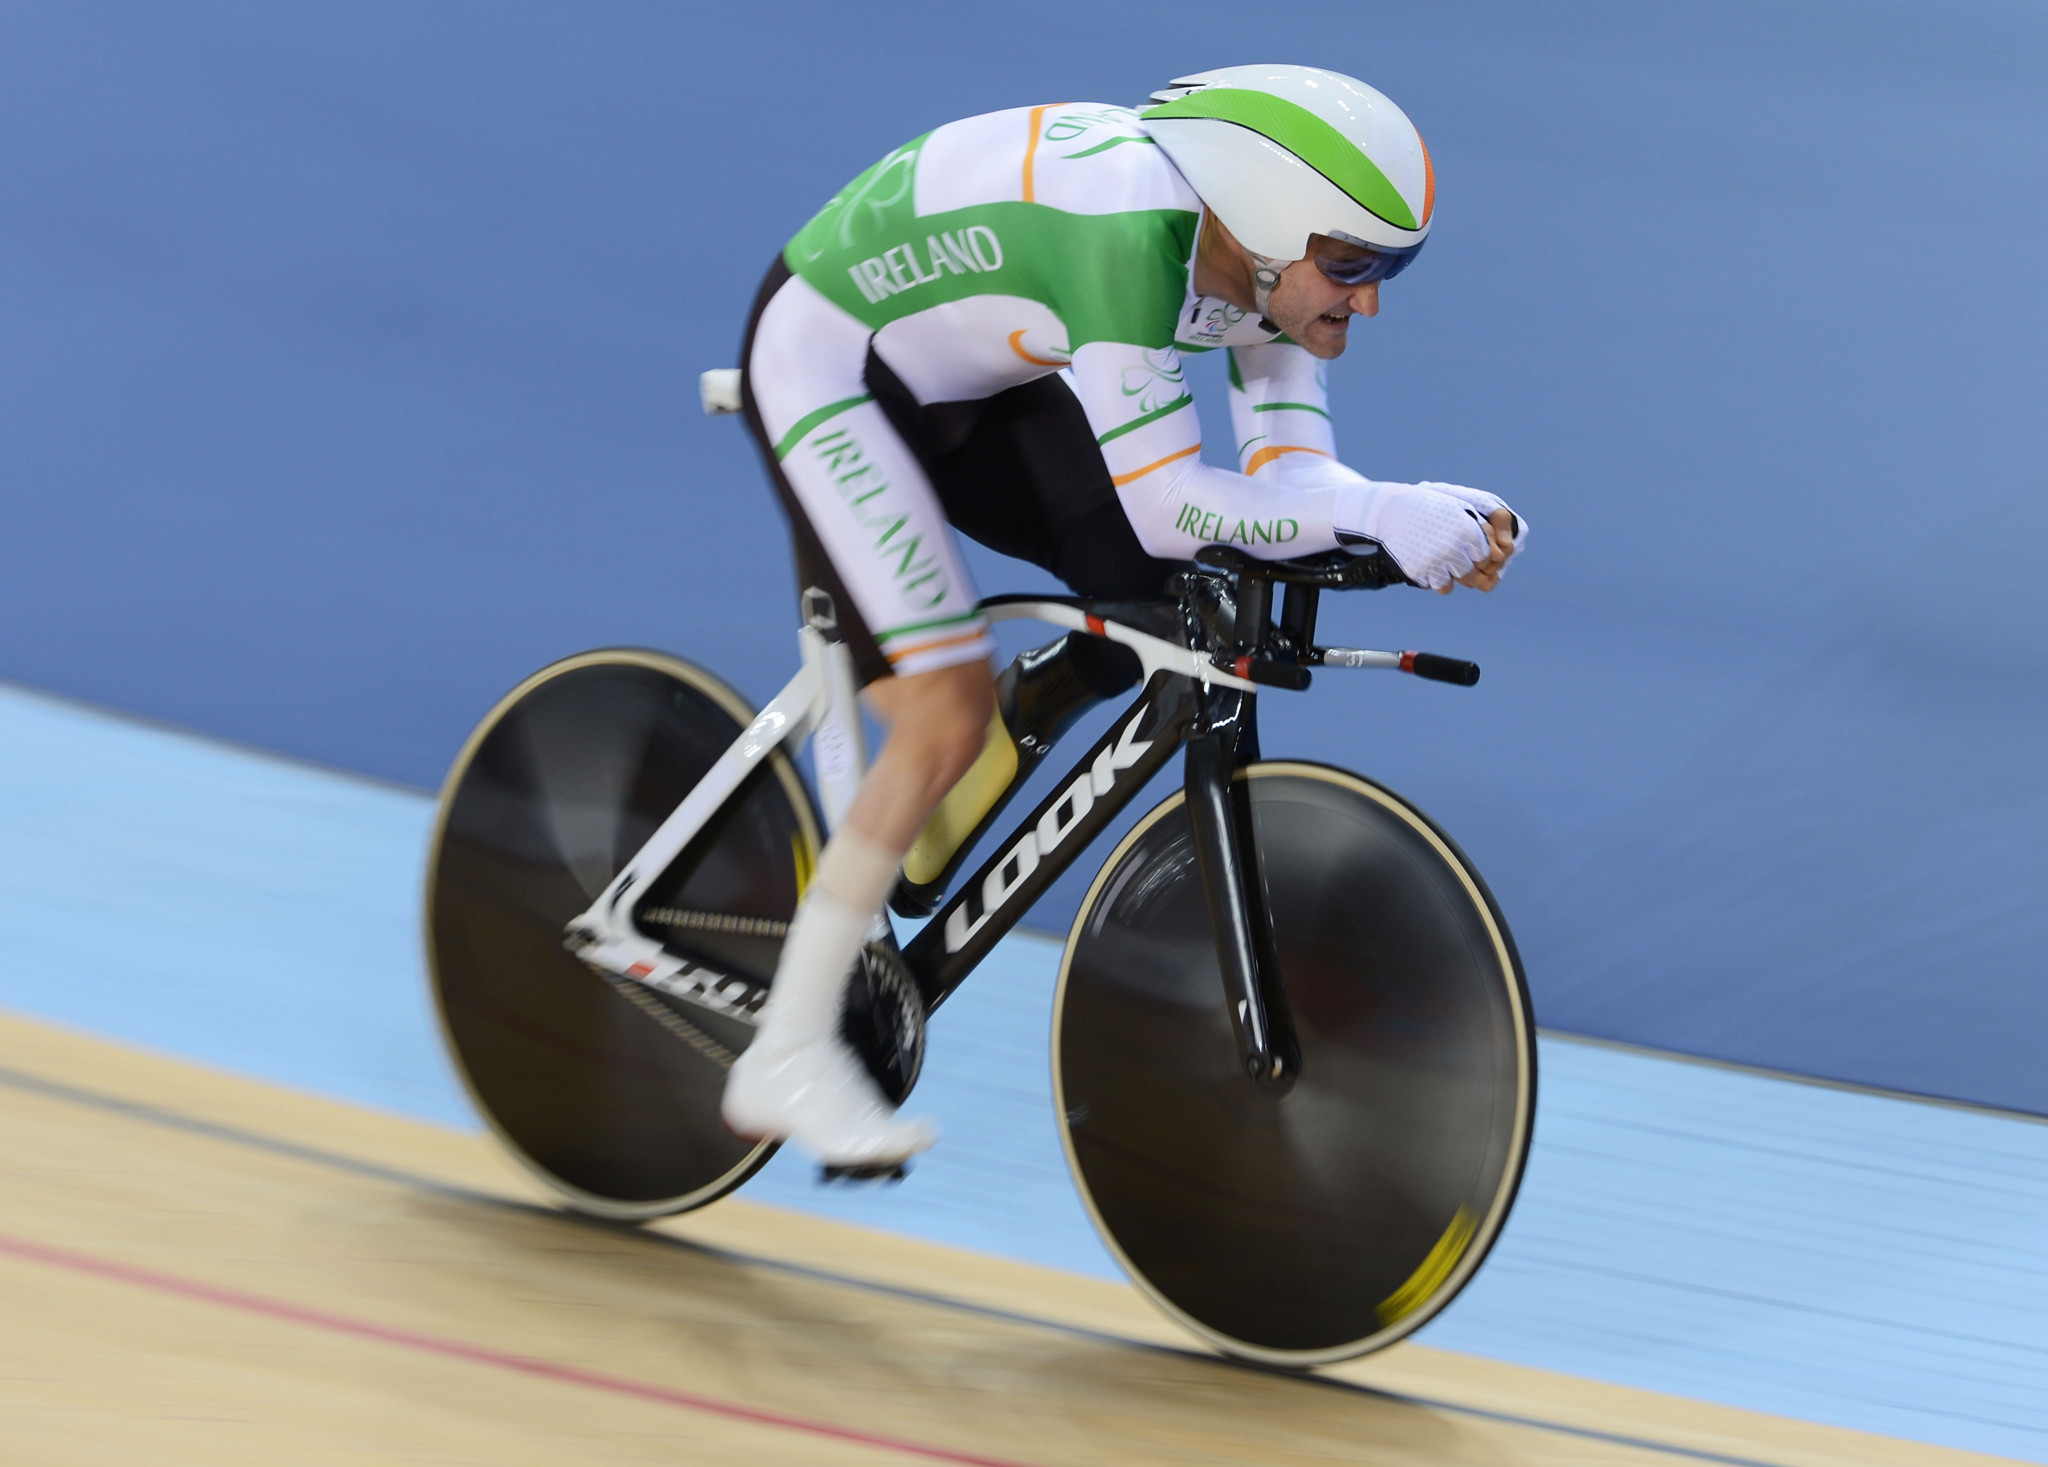 Ireland's multiple Para-cycling champion and history man Lynch announces retirement aged 48